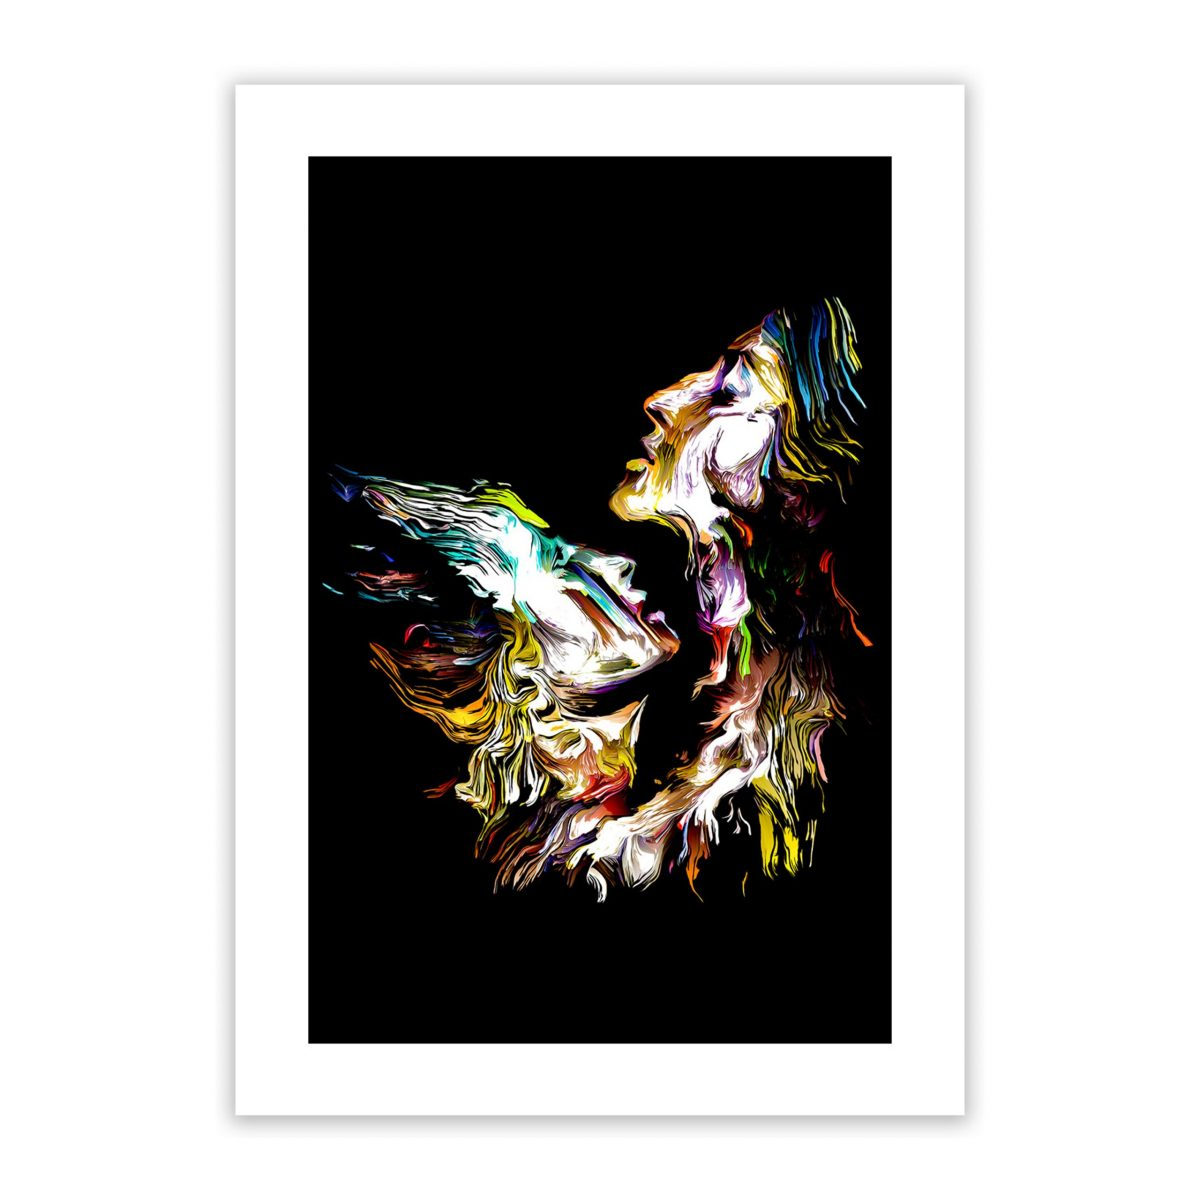 amoureux nude erotic wall art prints posters 1